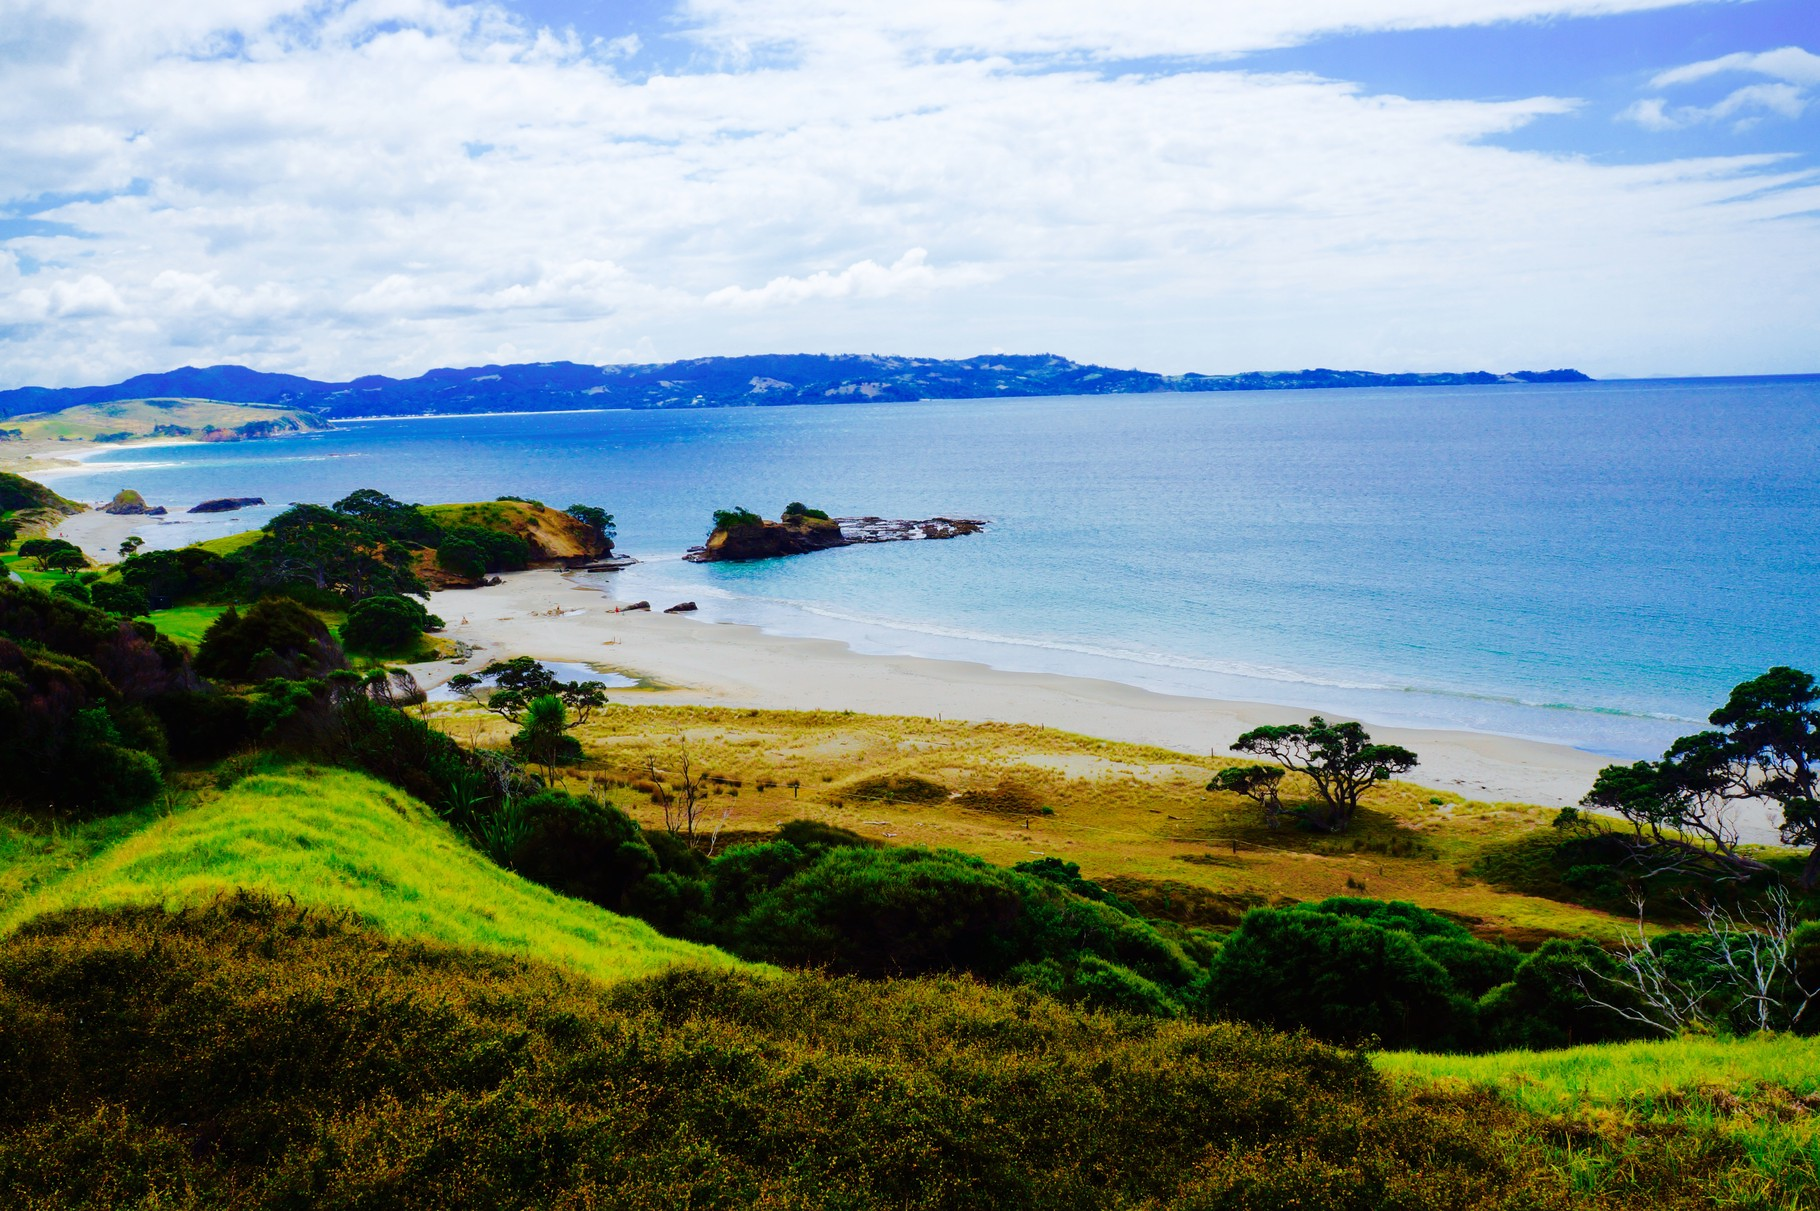 22 Photos That Prove Why New Zealand Might Just Be The Most Beautiful Country On Earth